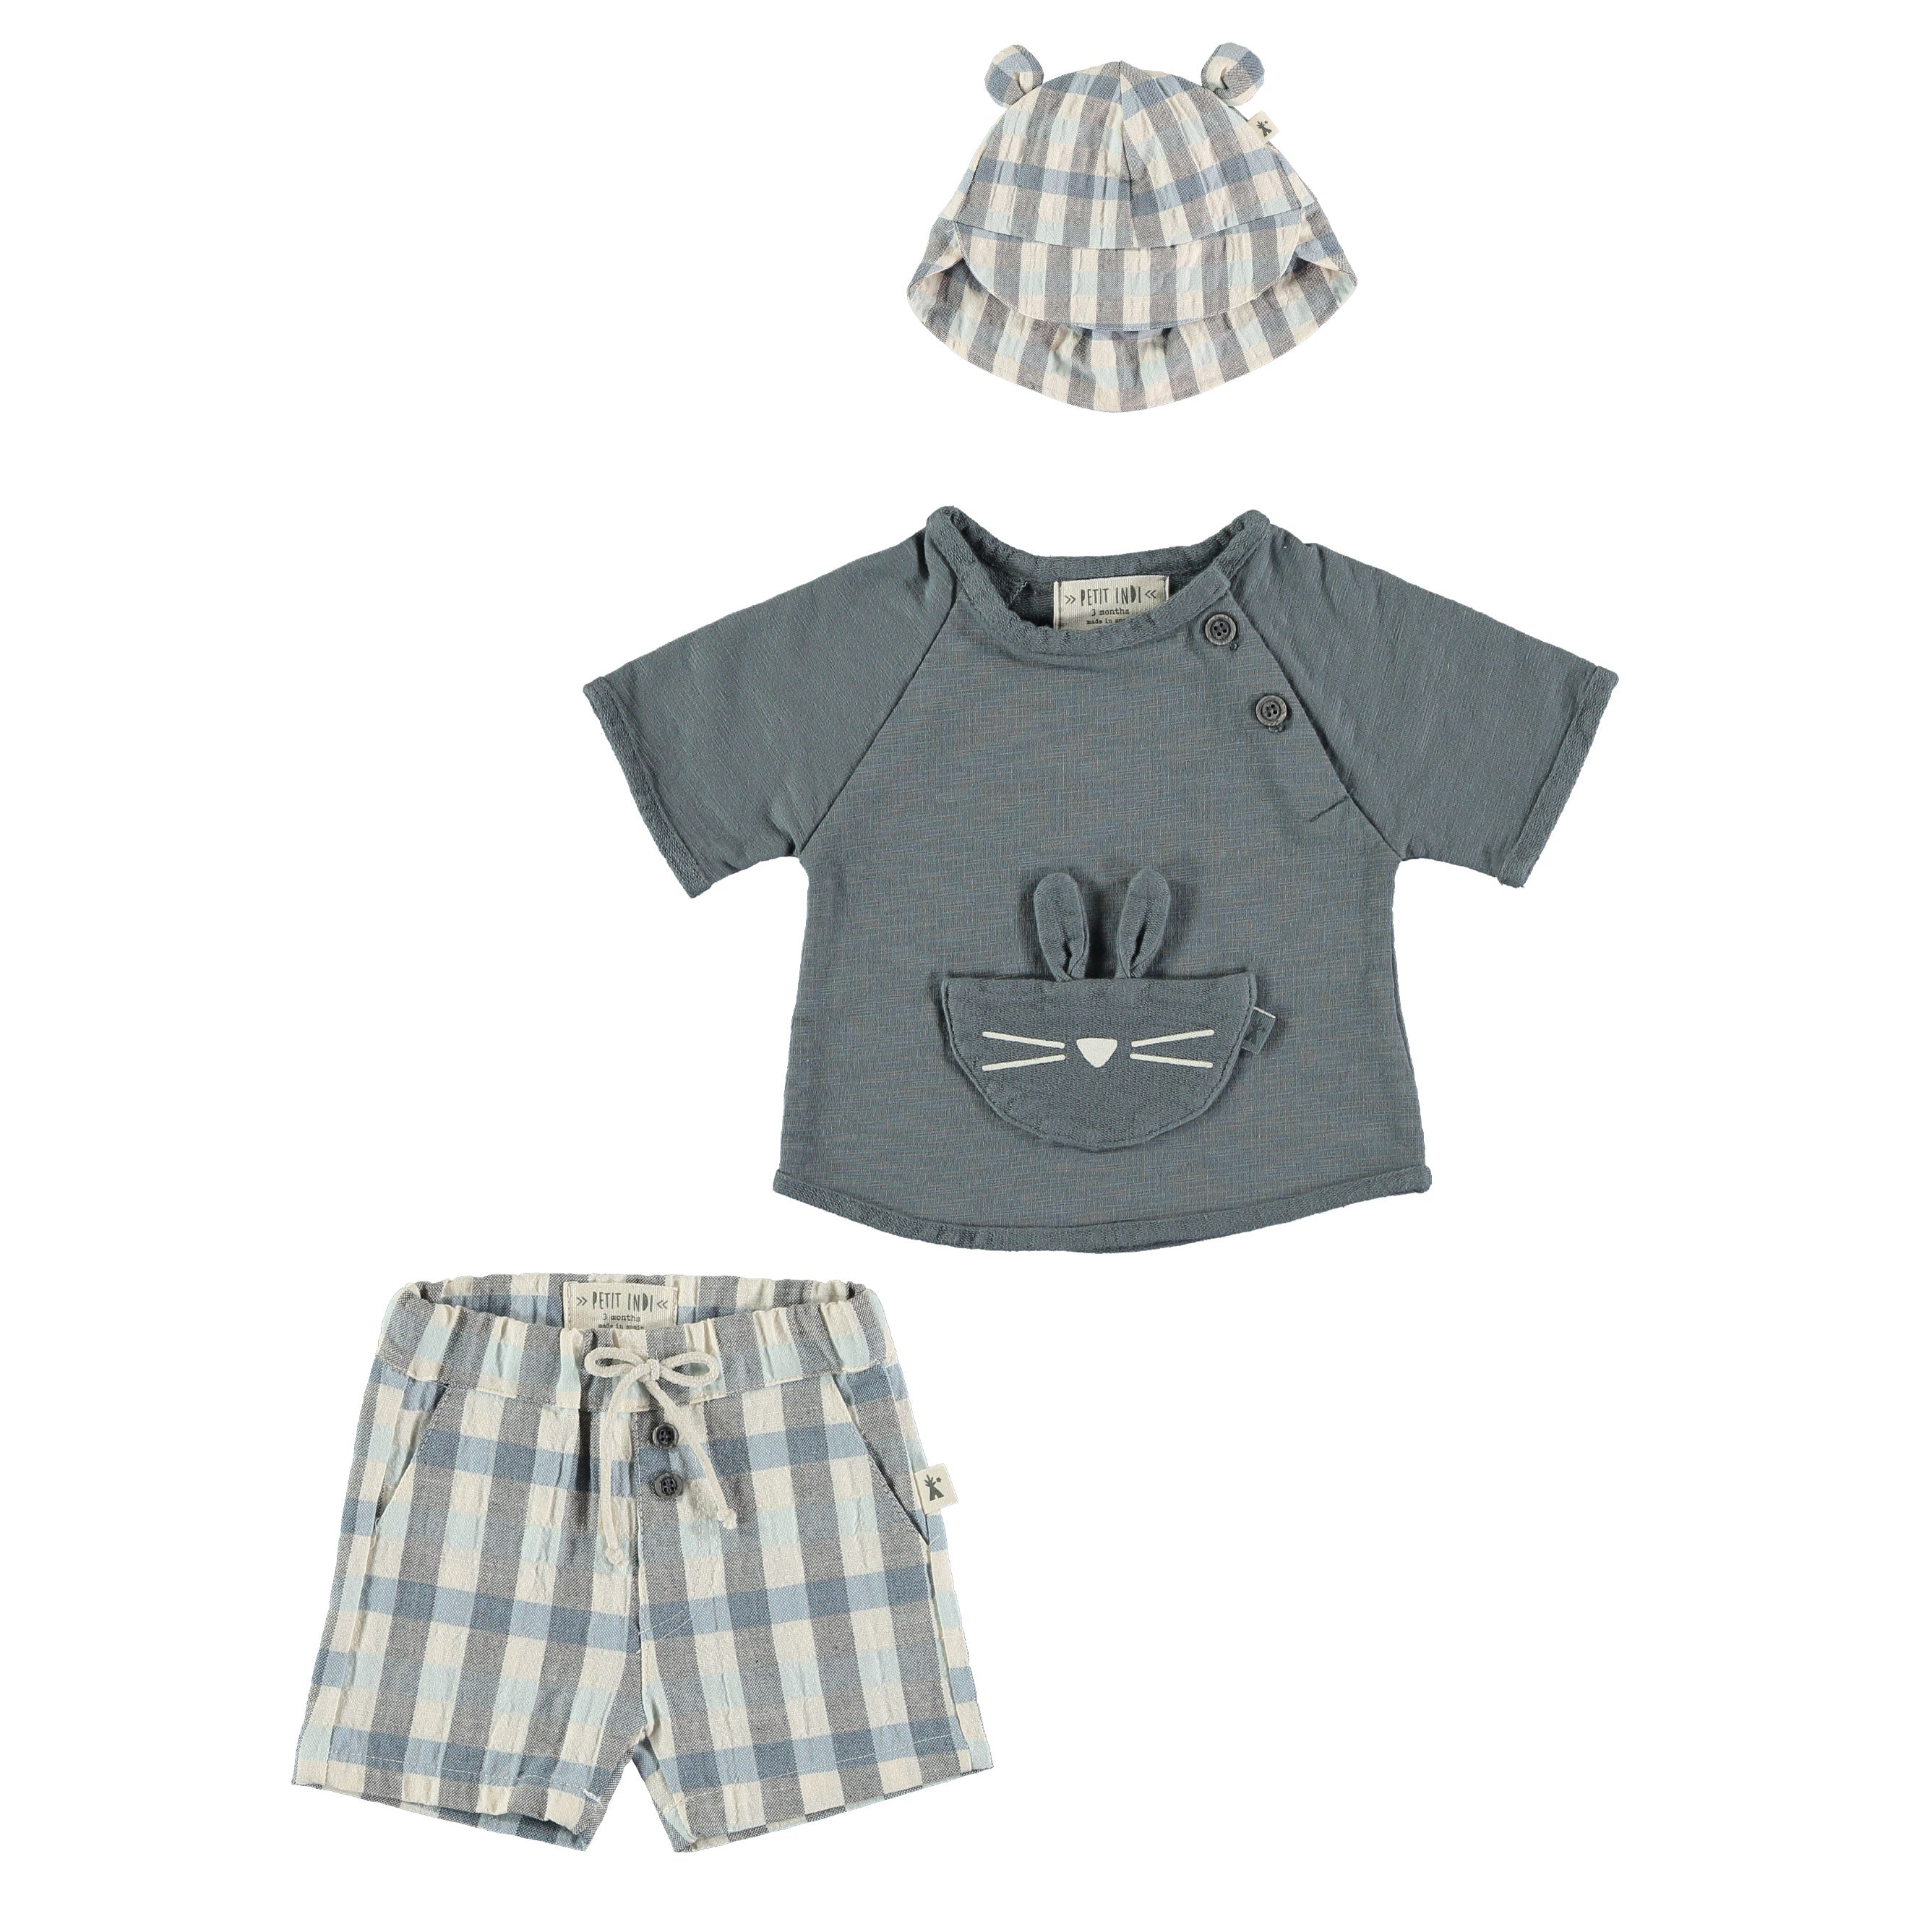 Summer Baby Outfit in Gingham by Petit Indi available at Bonjour Baby Baskets